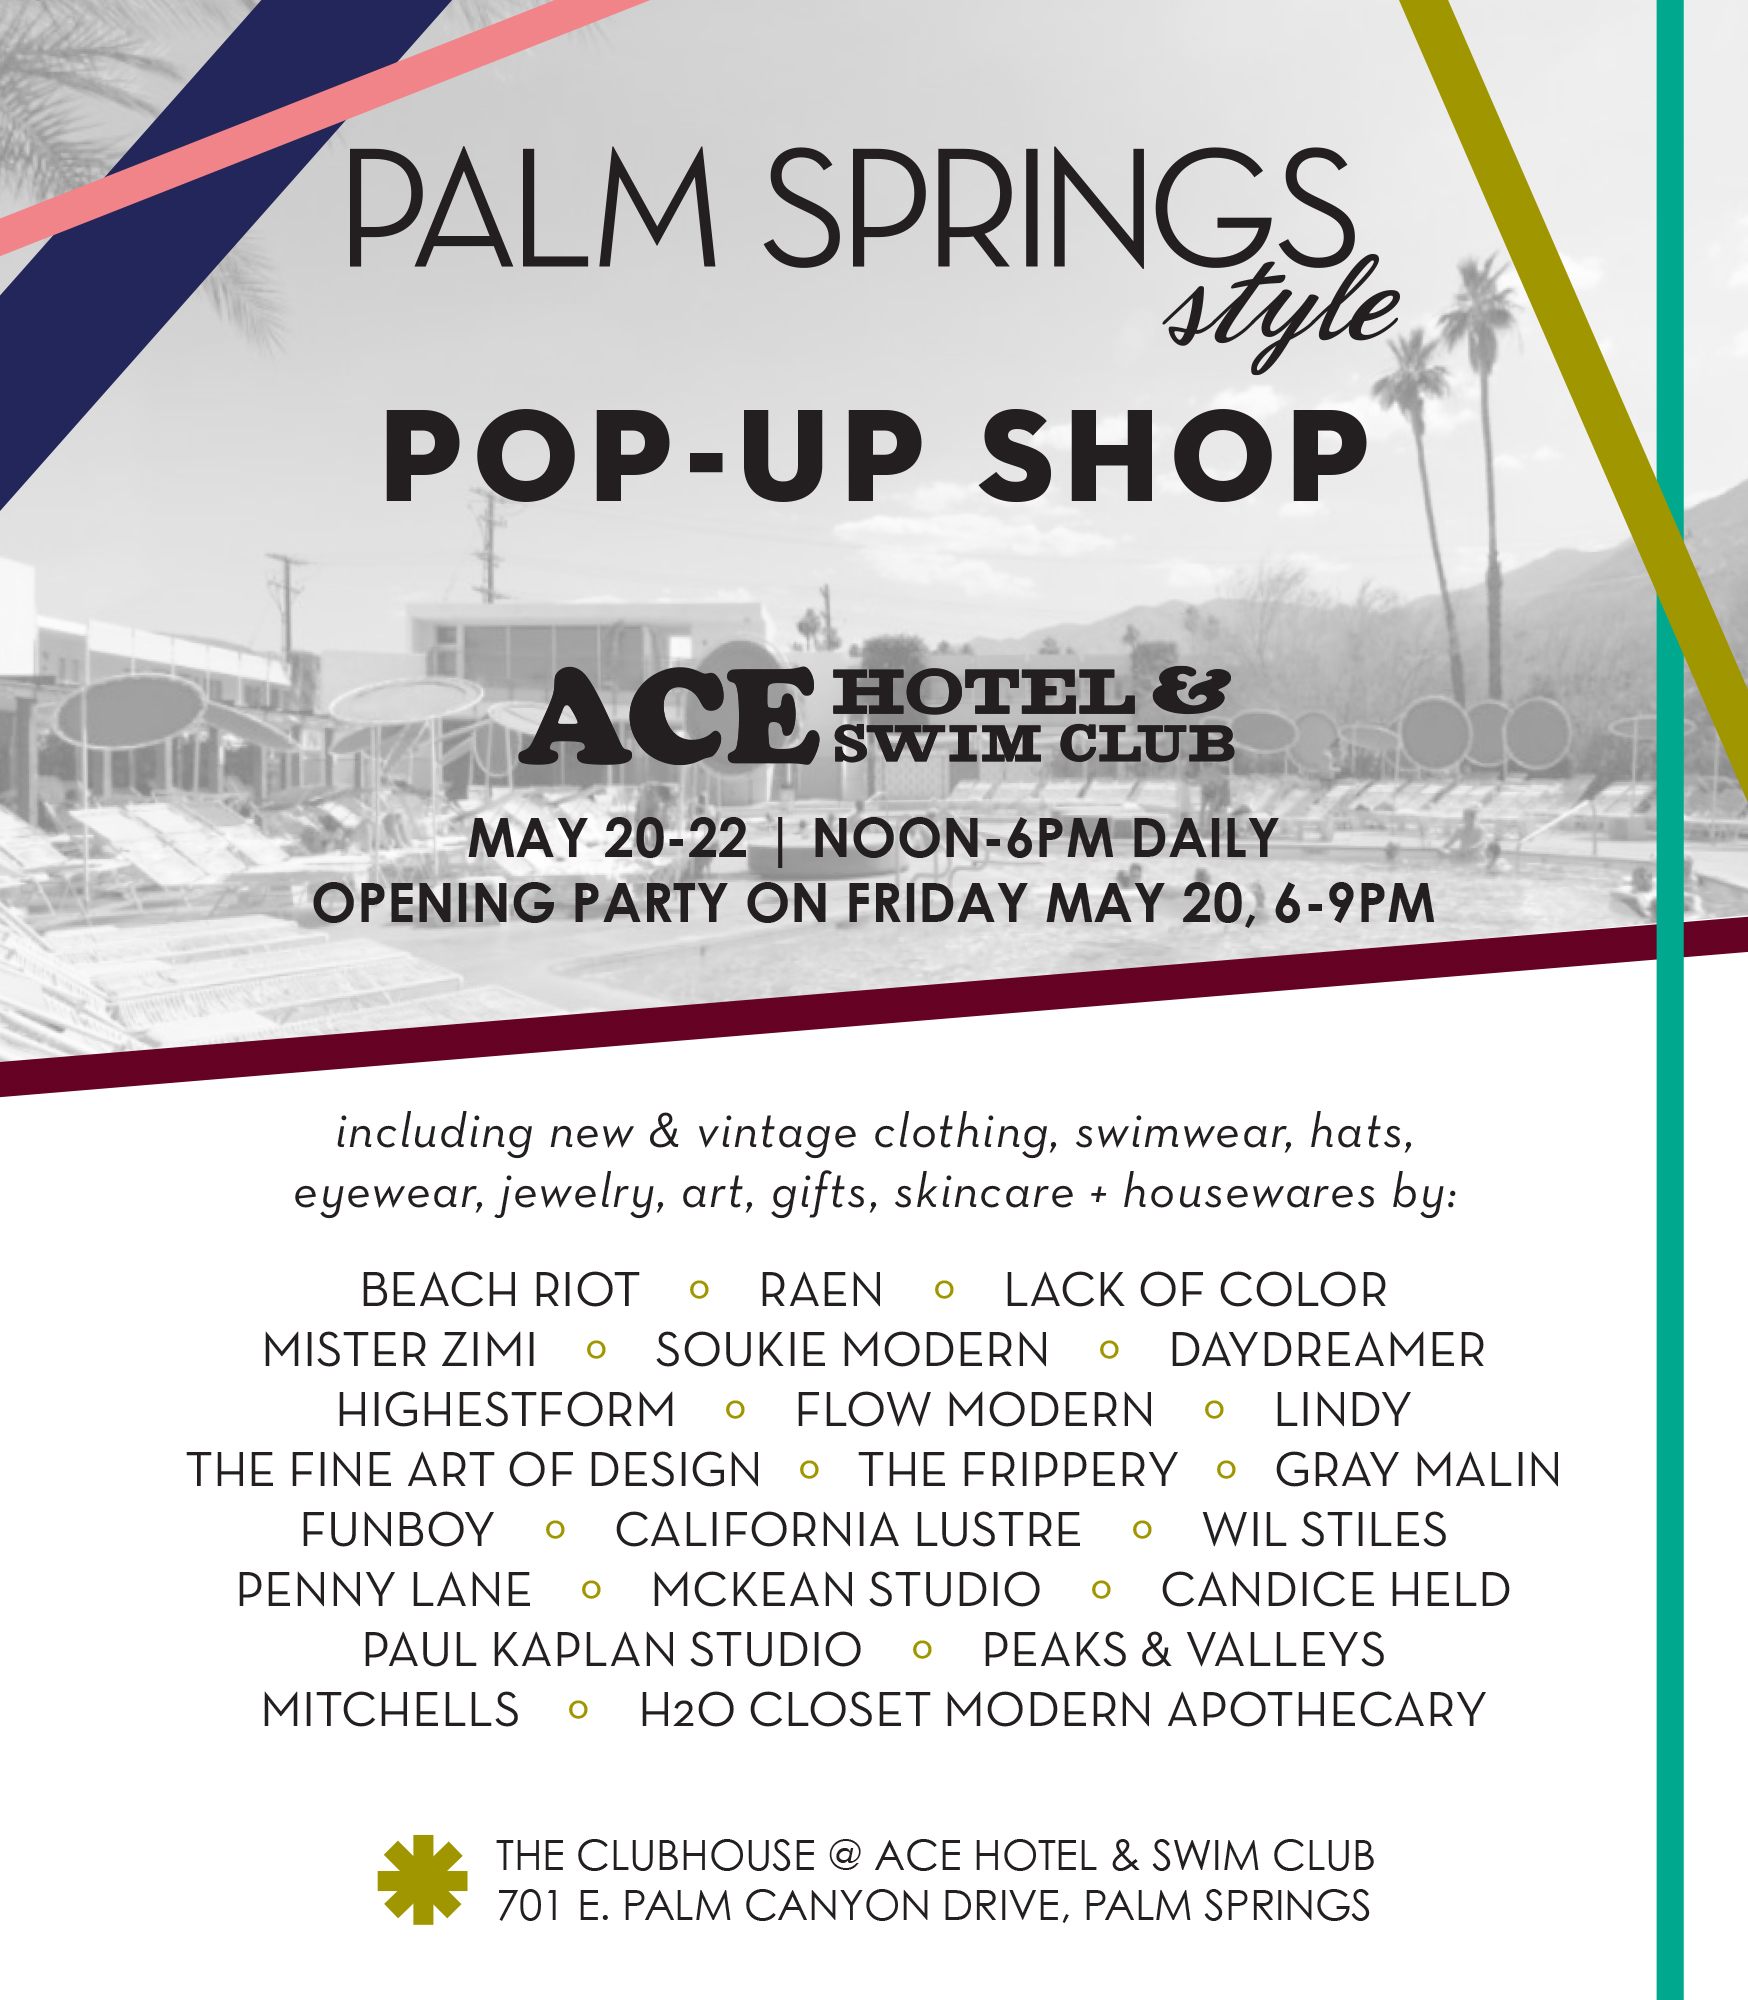 InvitePopUp-Flyer-AceHotelPalmSpringsStyle